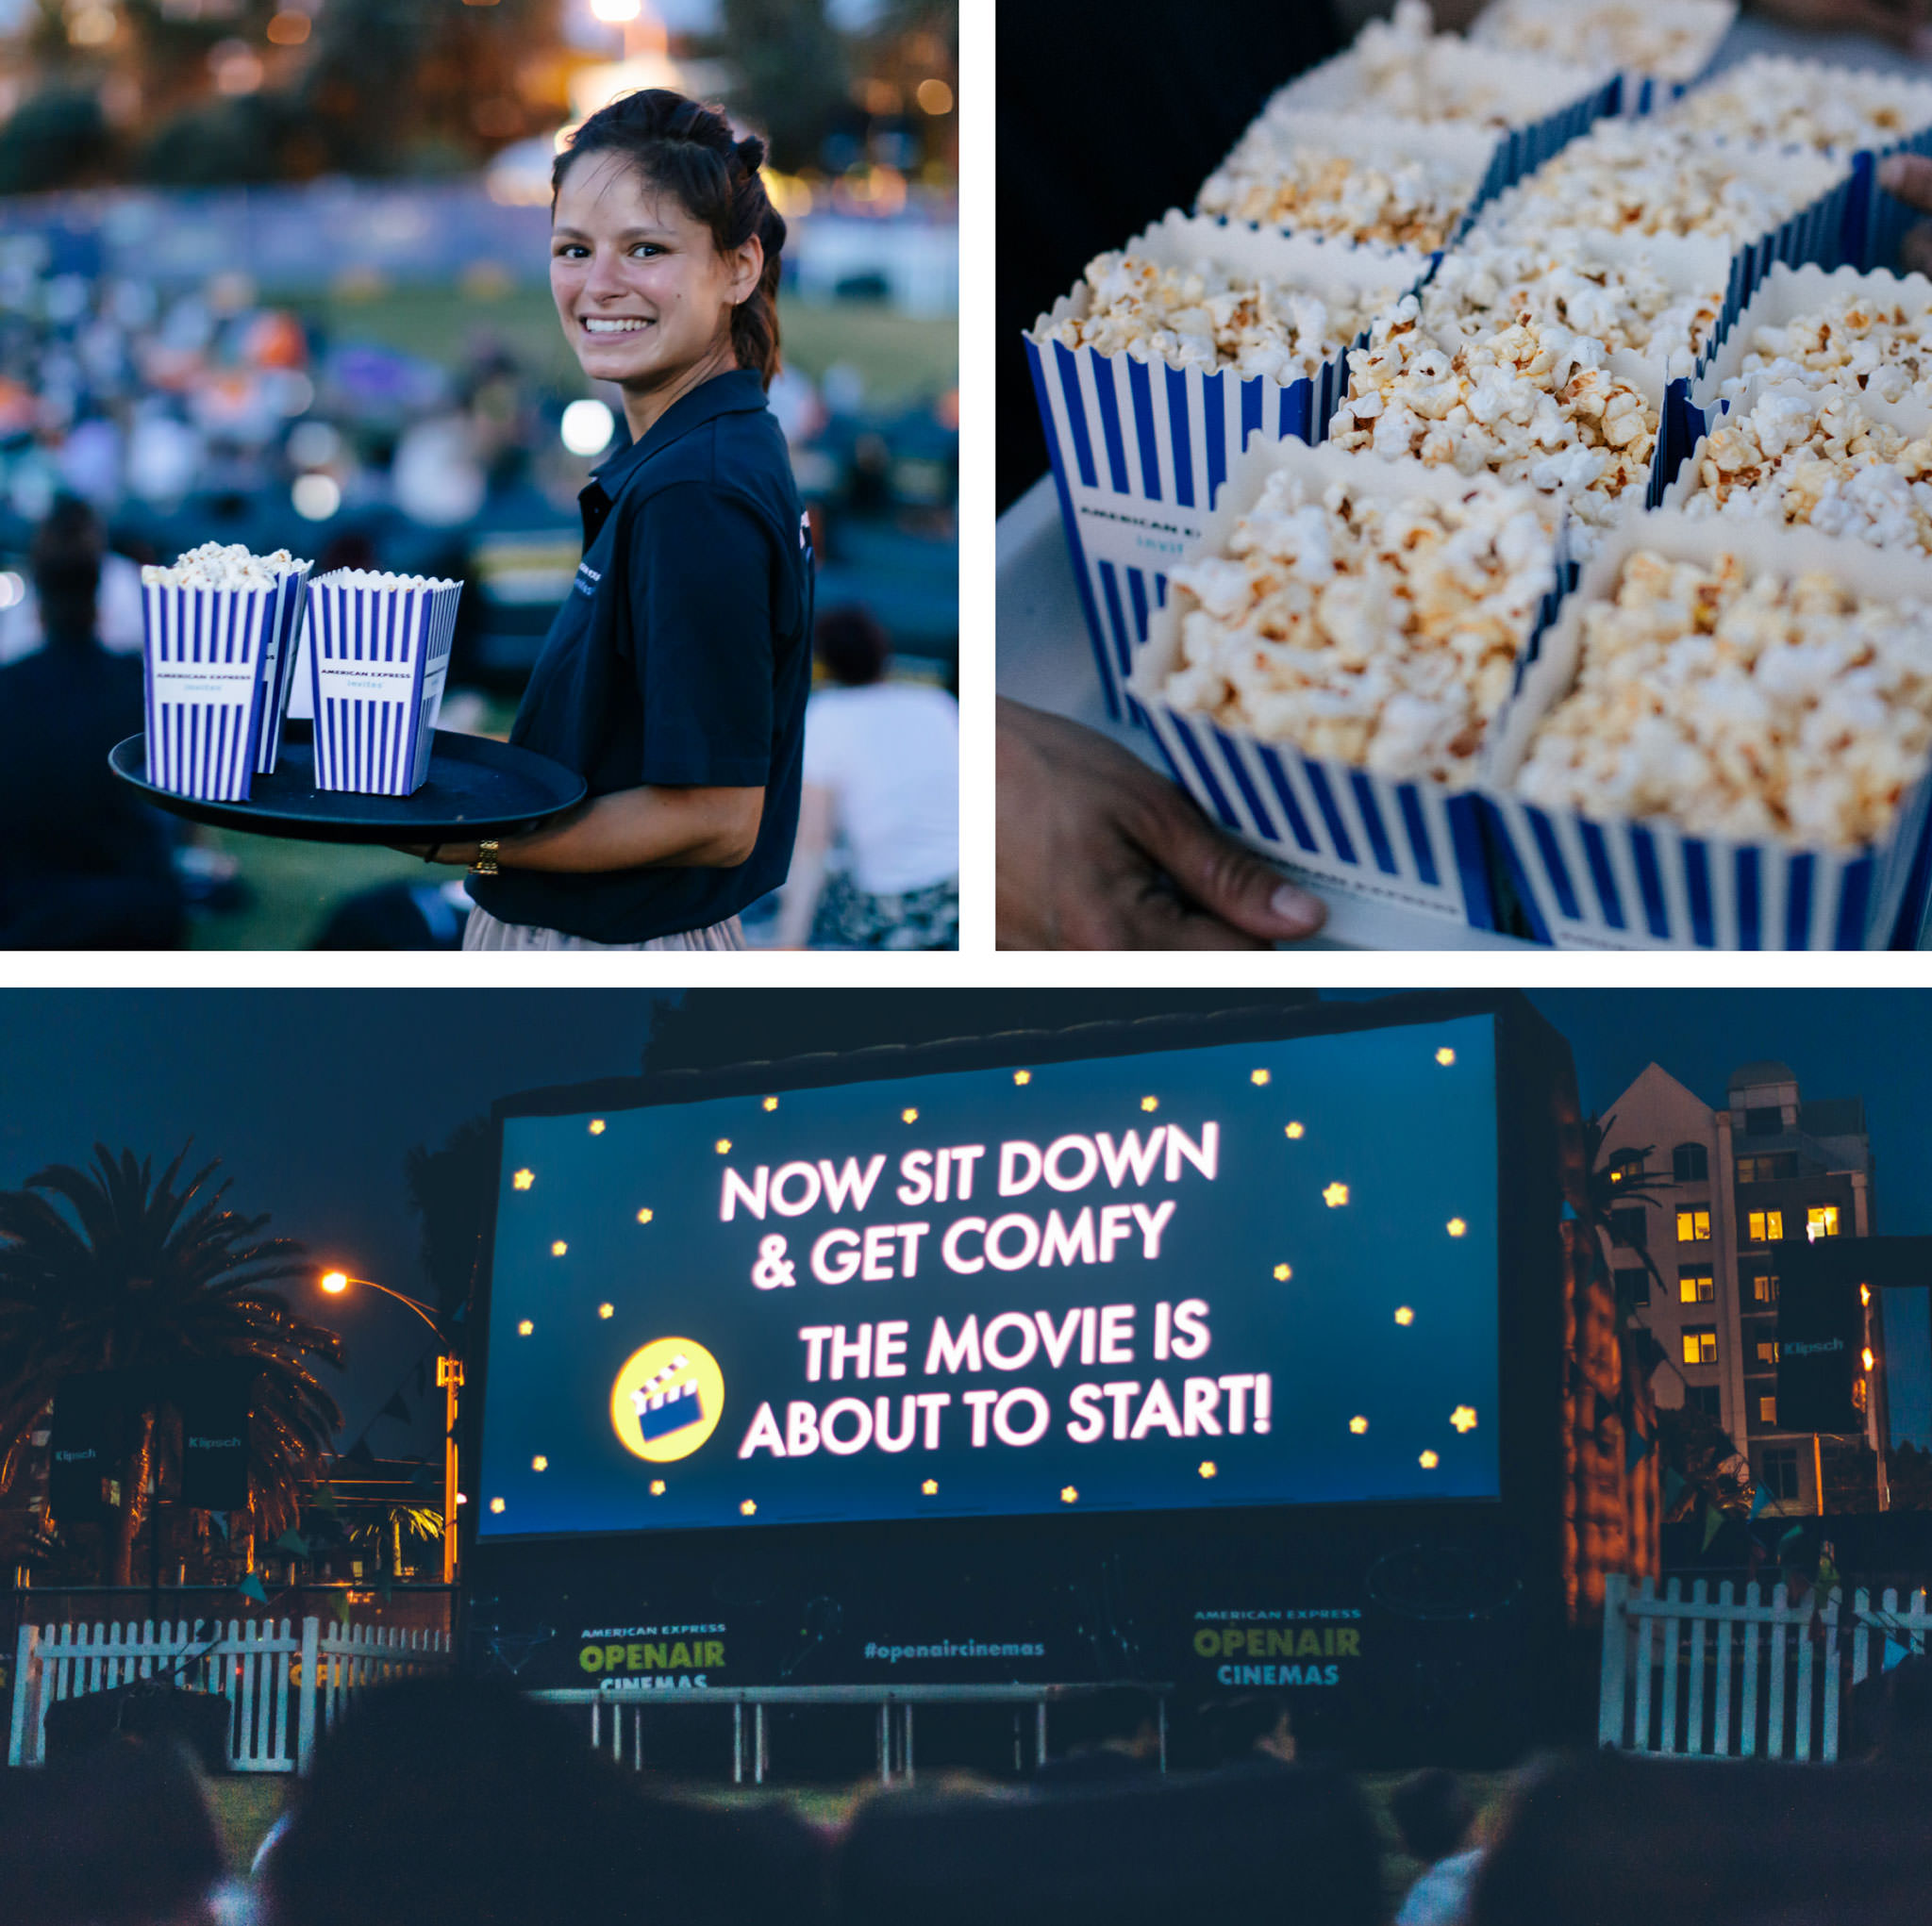 popcorn and outdoor movie in Melbourne